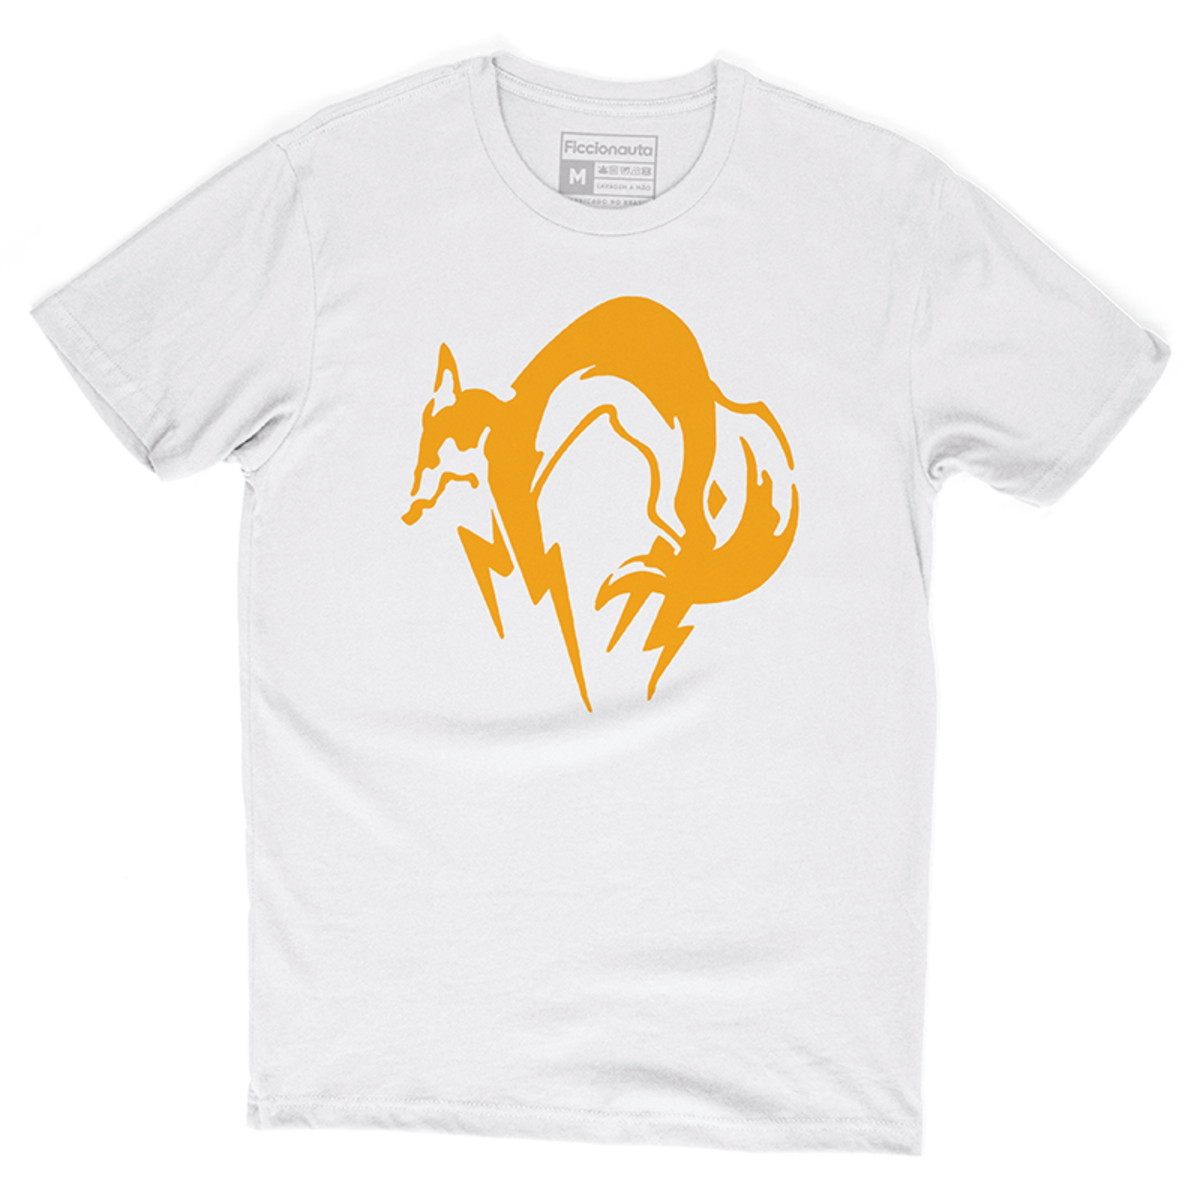 a190bdd22d5b9 Camiseta Metal Gear Solid Fox Foxhound Snake Camisa Games no Elo7 ...